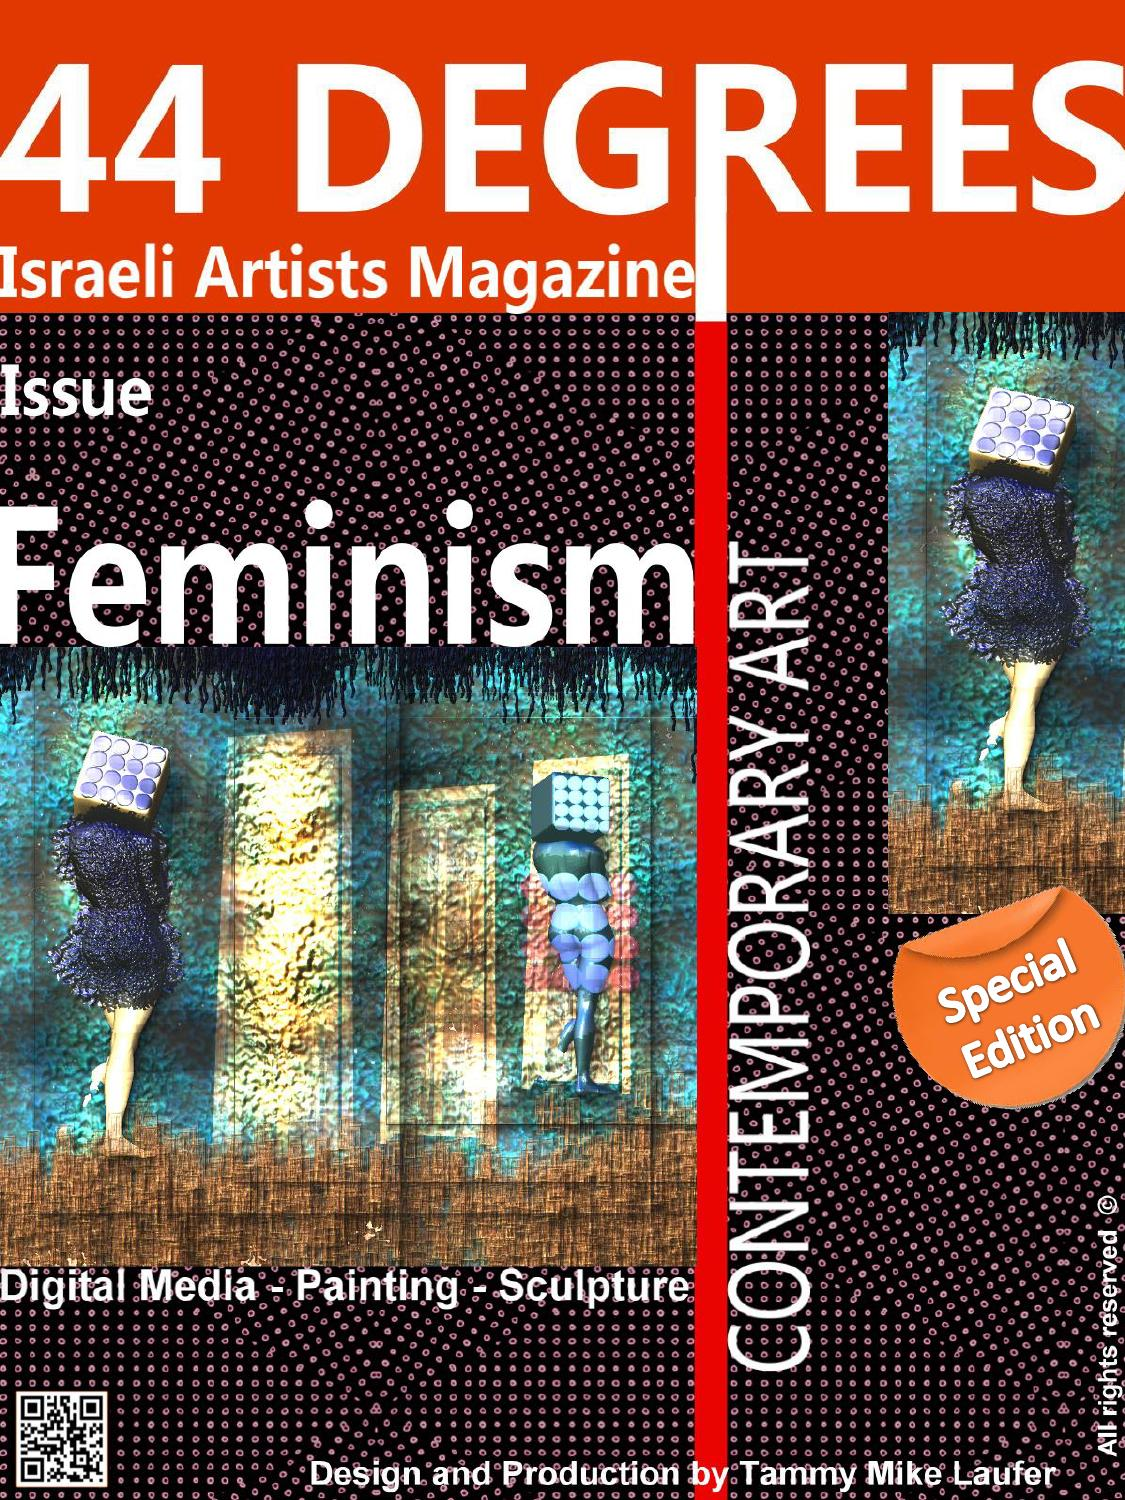 FEMINISM The New Issue Of The Online Art Magazine 44